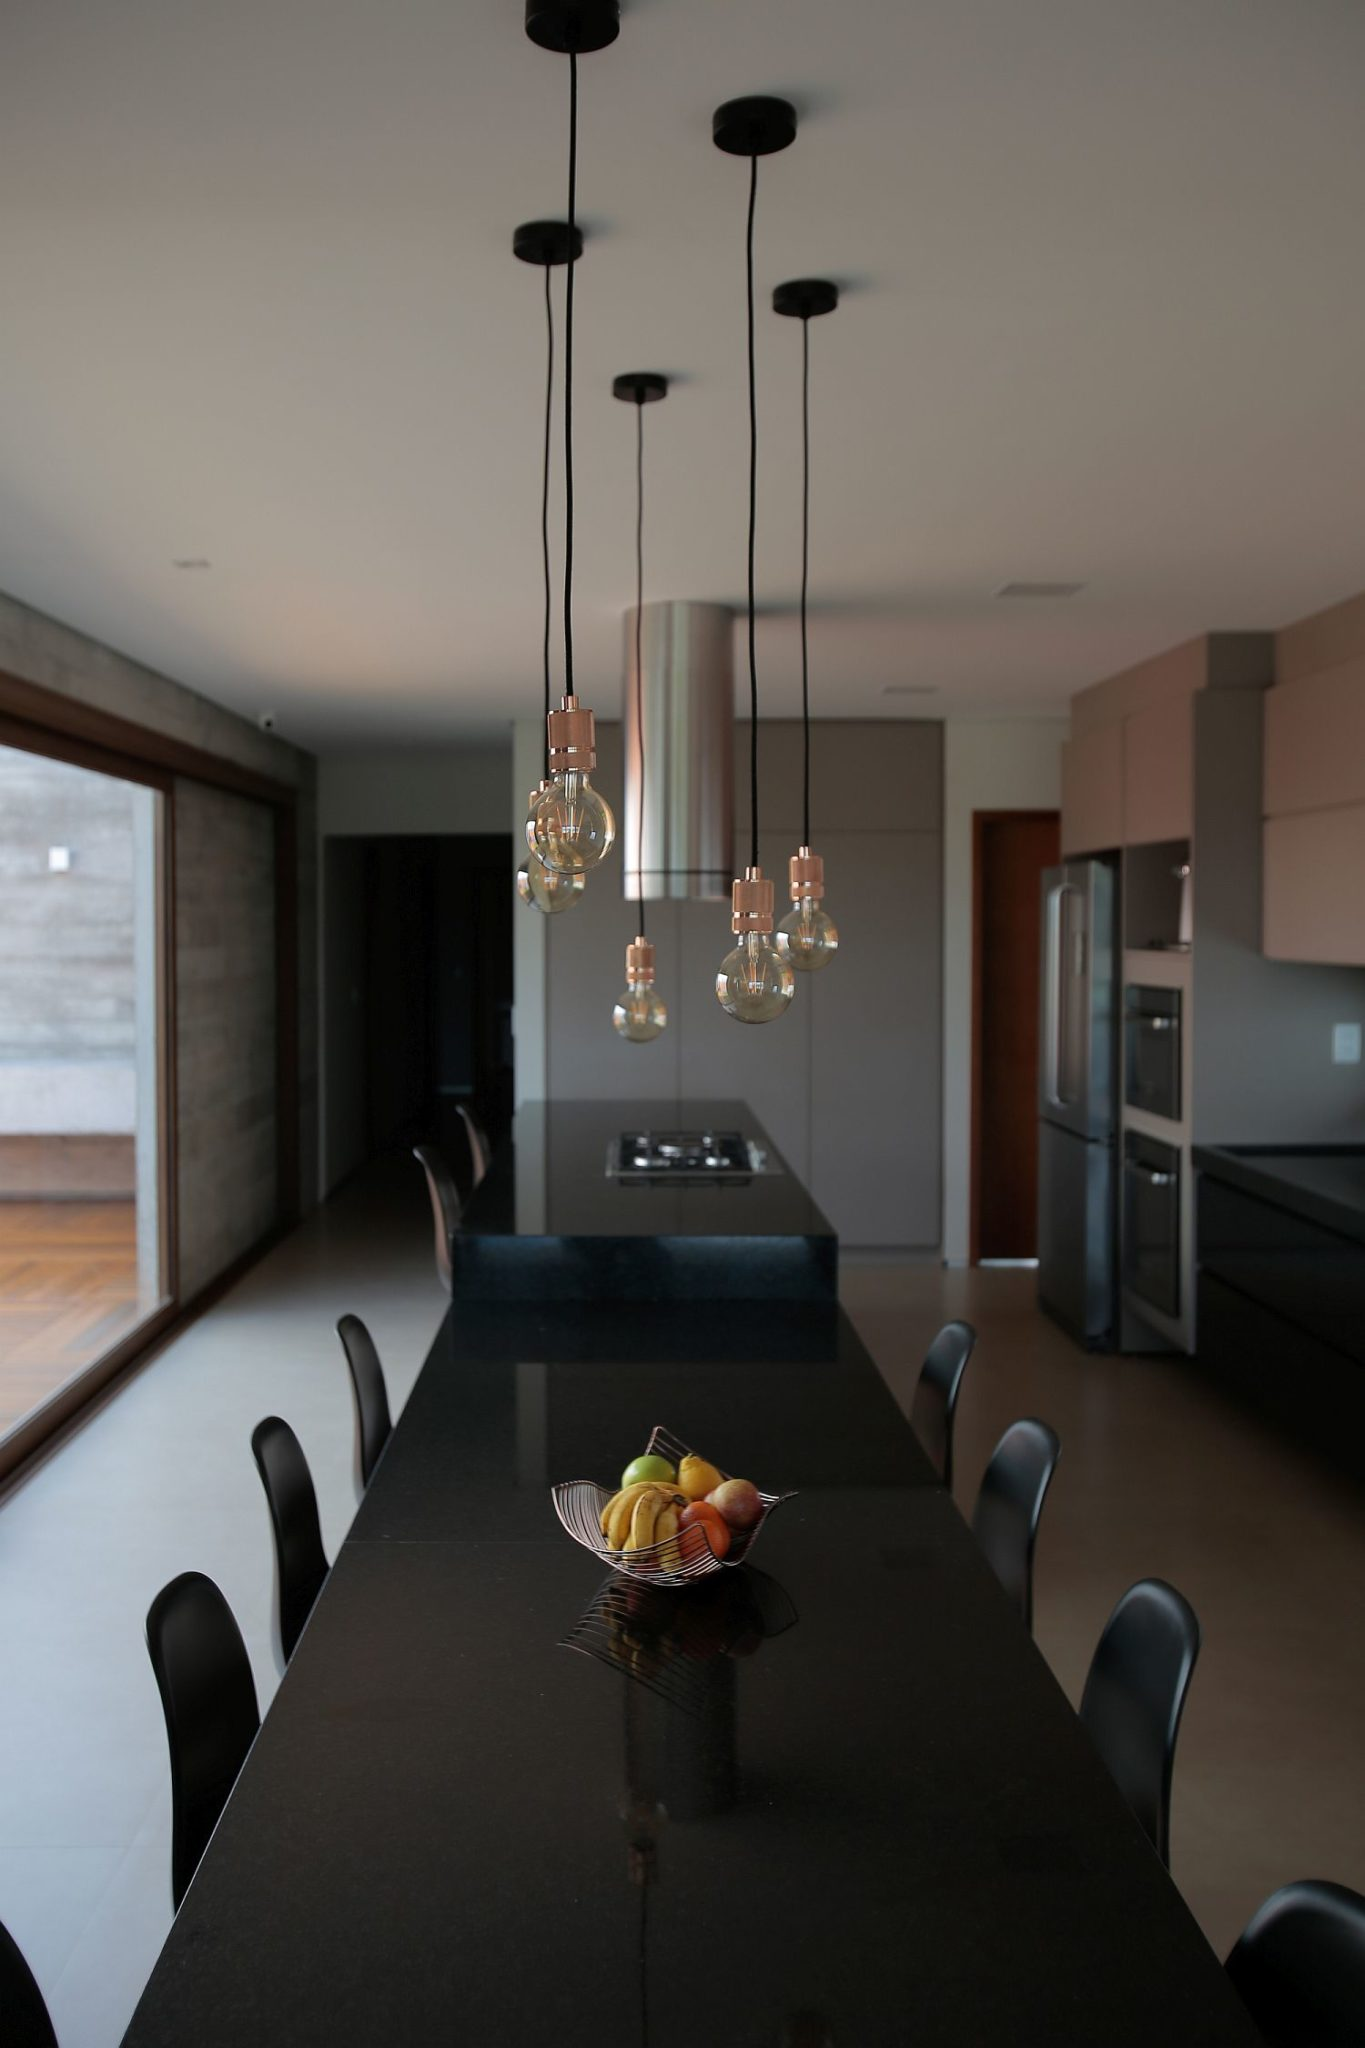 Black-countertops-add-style-to-the-kitchen-and-dining